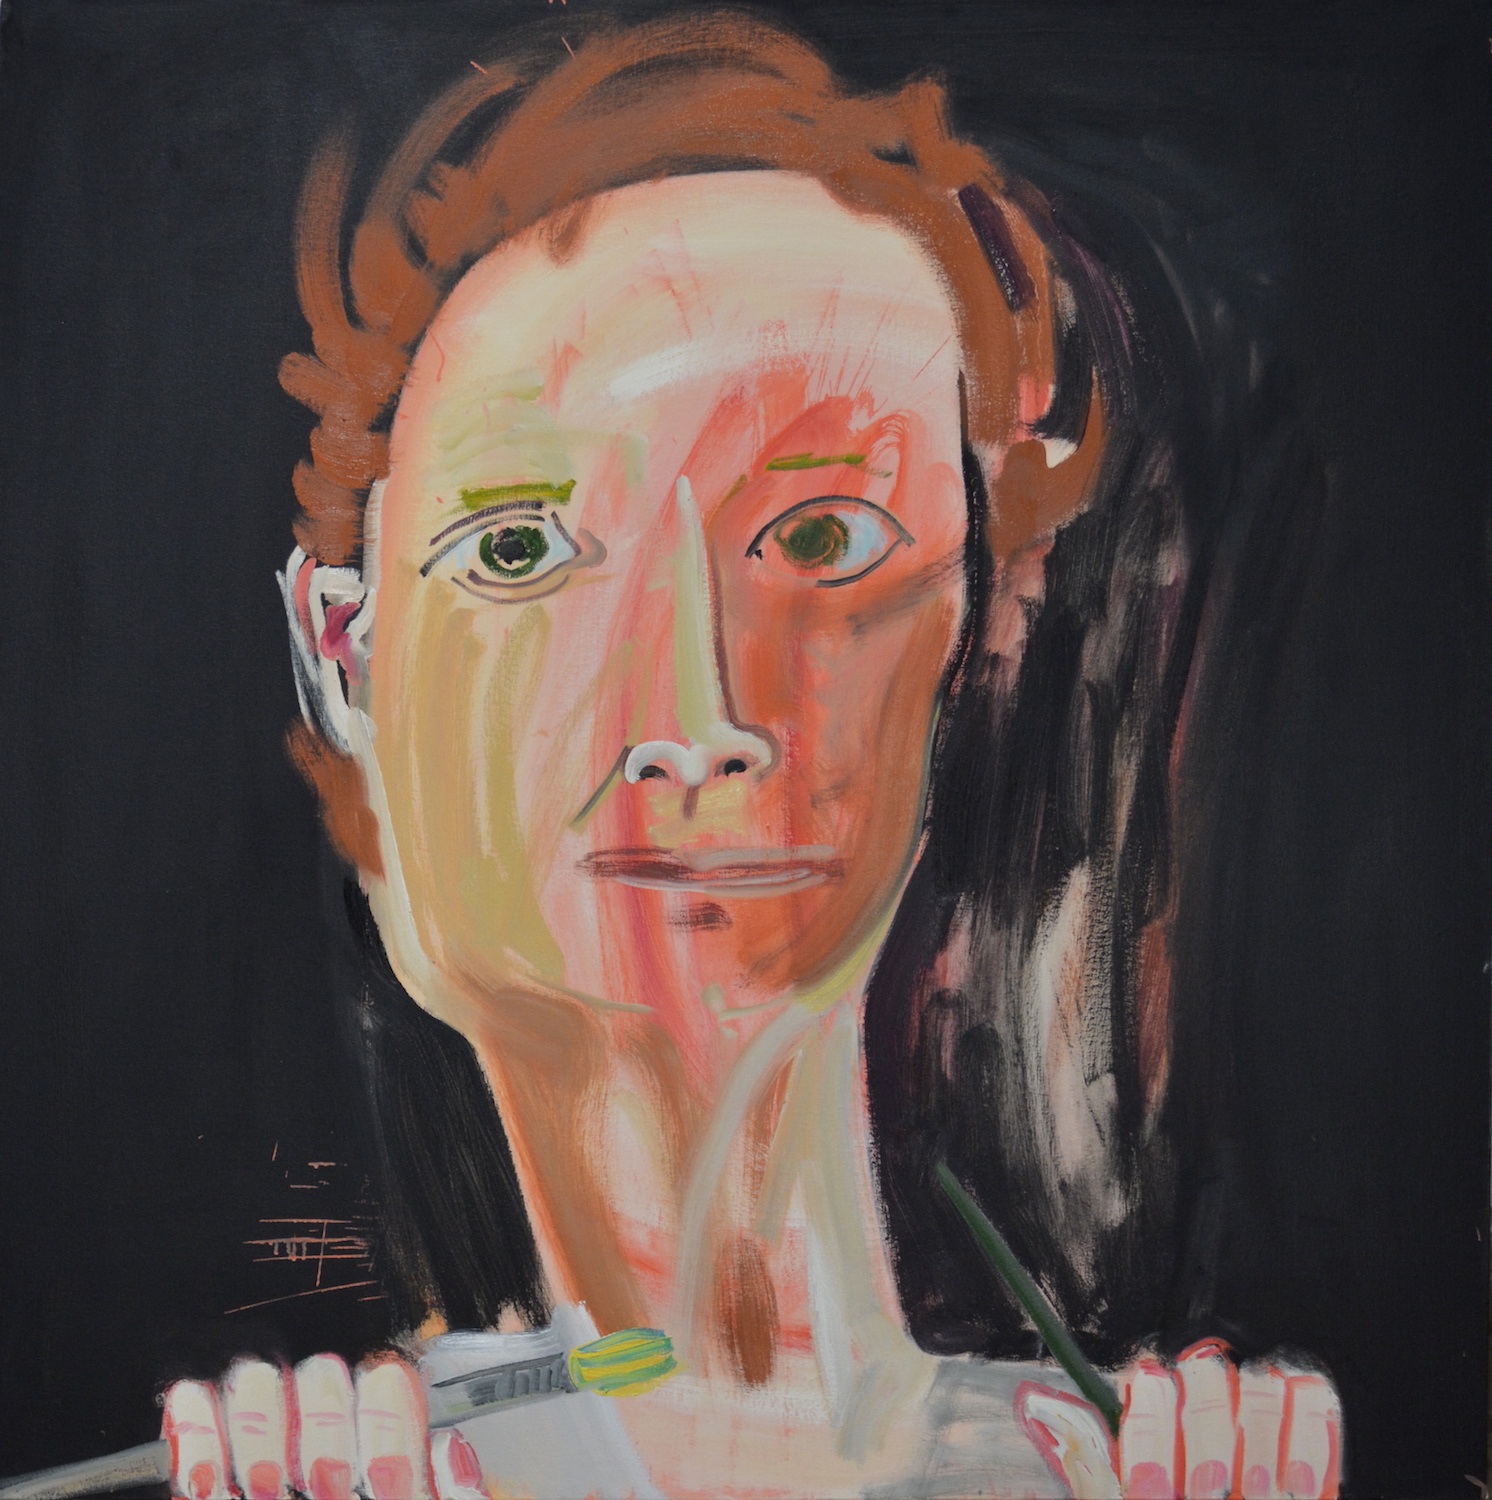 Self portrait with brushes, 2014